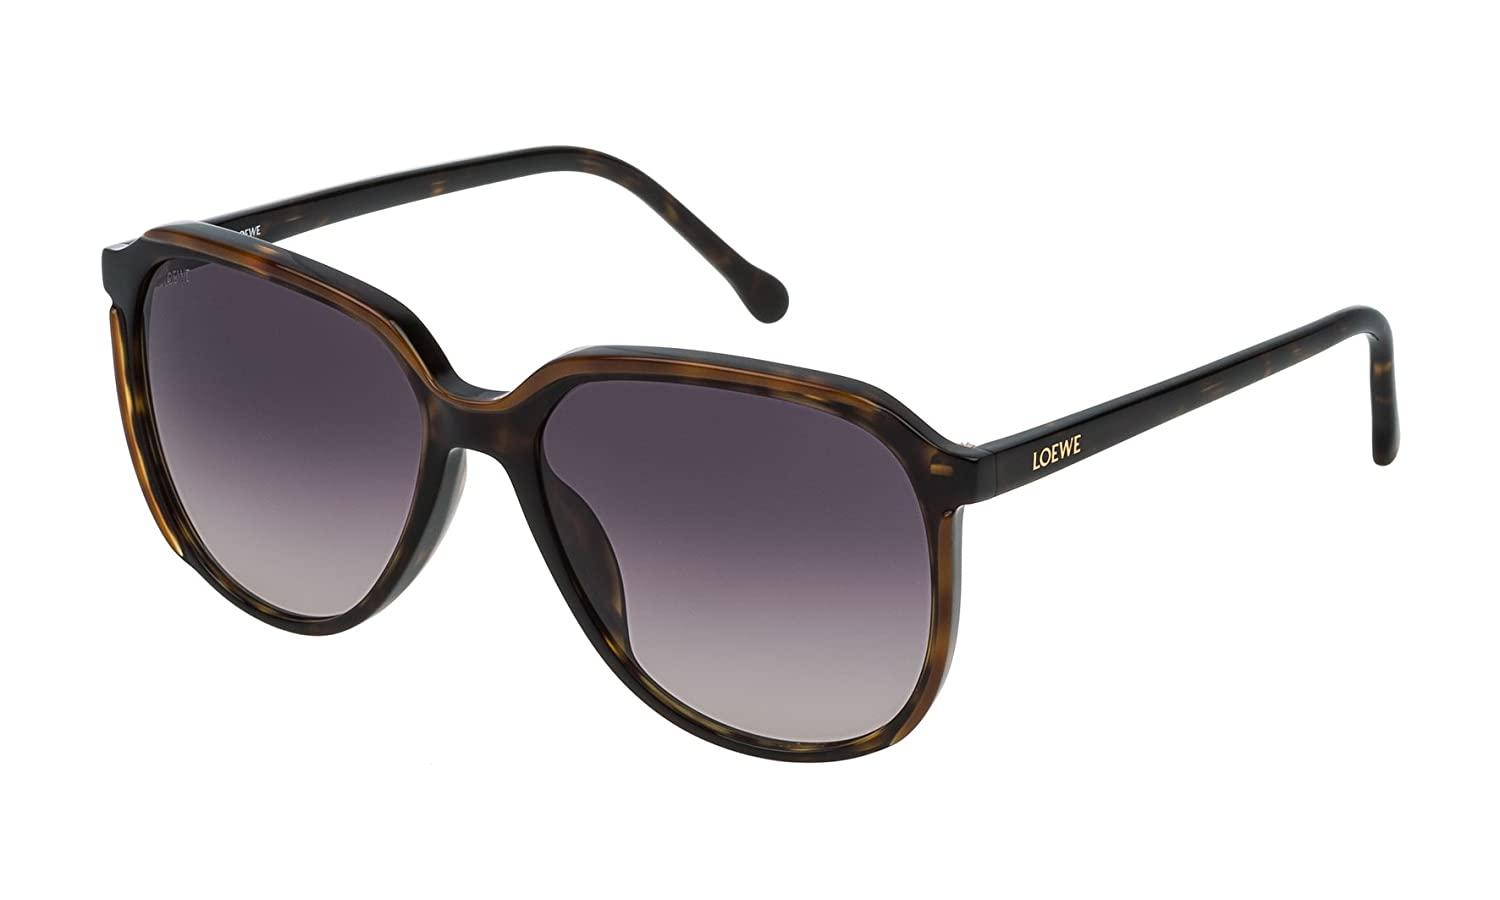 LOEWE Women''s SLW962M5601EH Sunglasses, (Dark Havana+Light Brown), 56